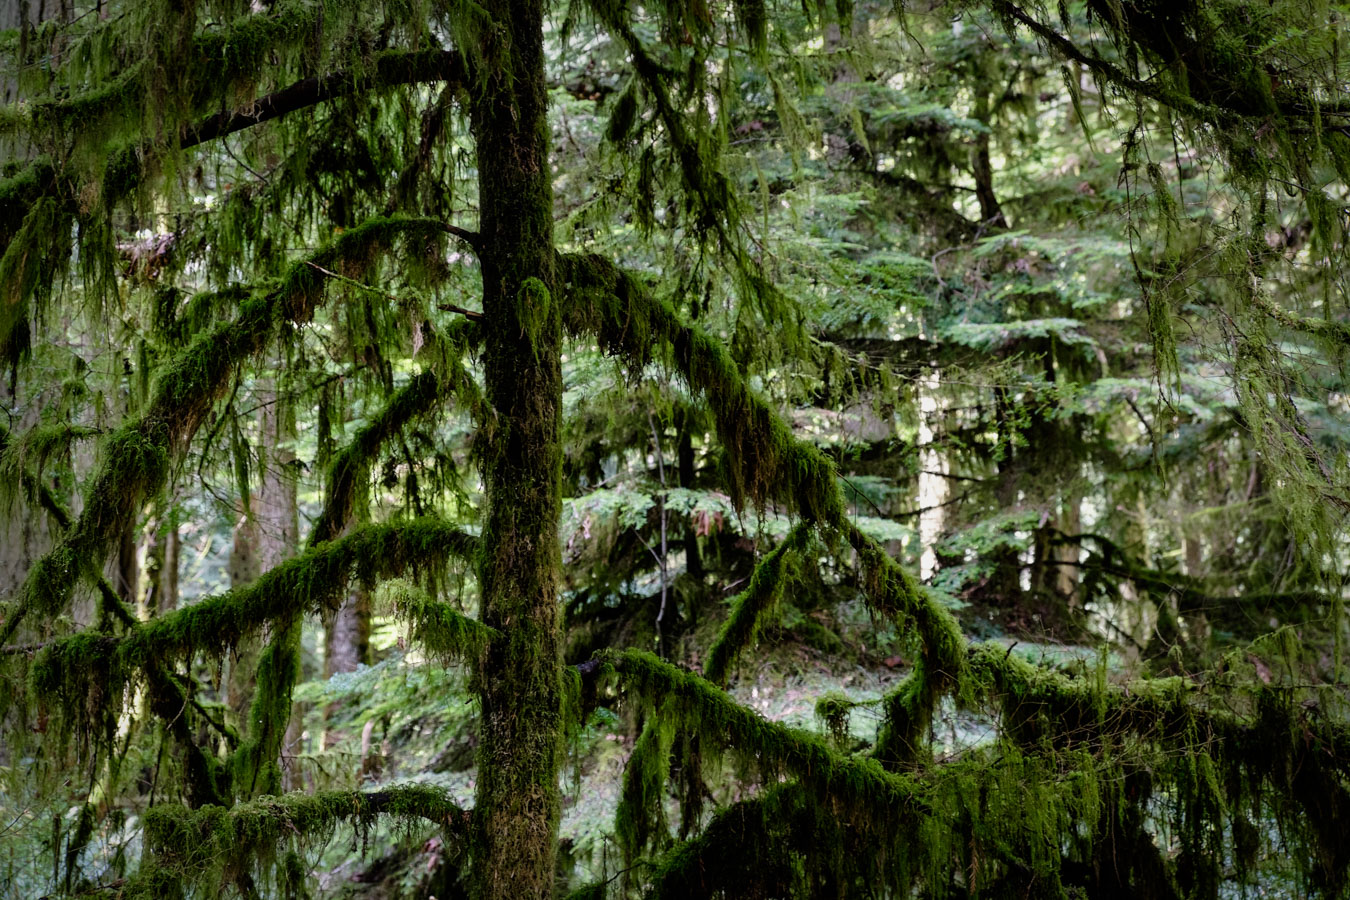 British Columbia, Canada, forest by Sharon Blance photographer